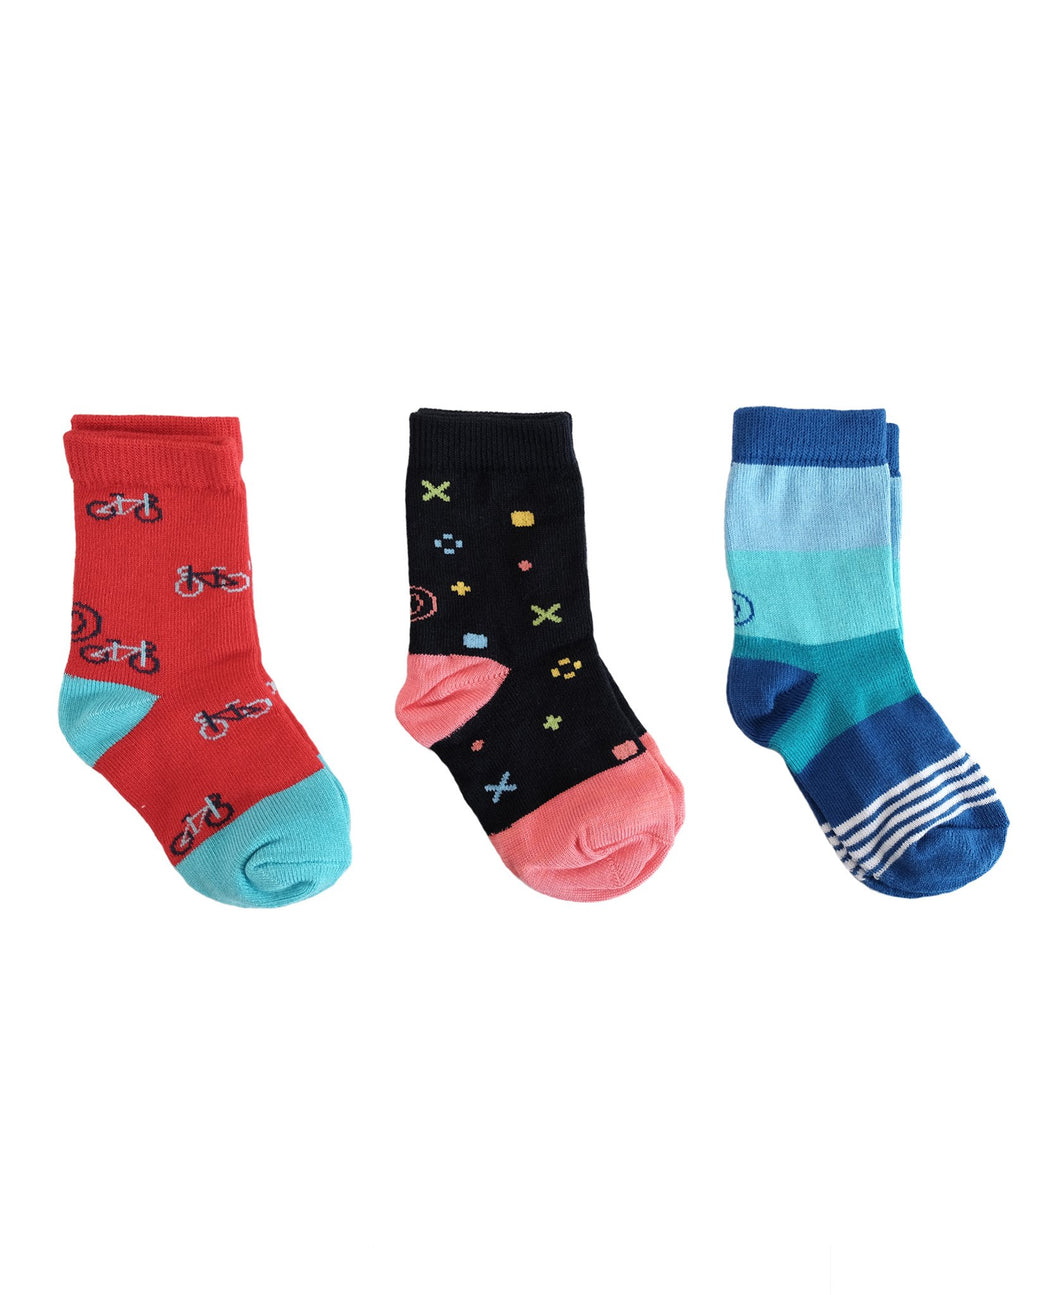 Baby Socks Boxset (Lyon, Brooklyn, Alaska)